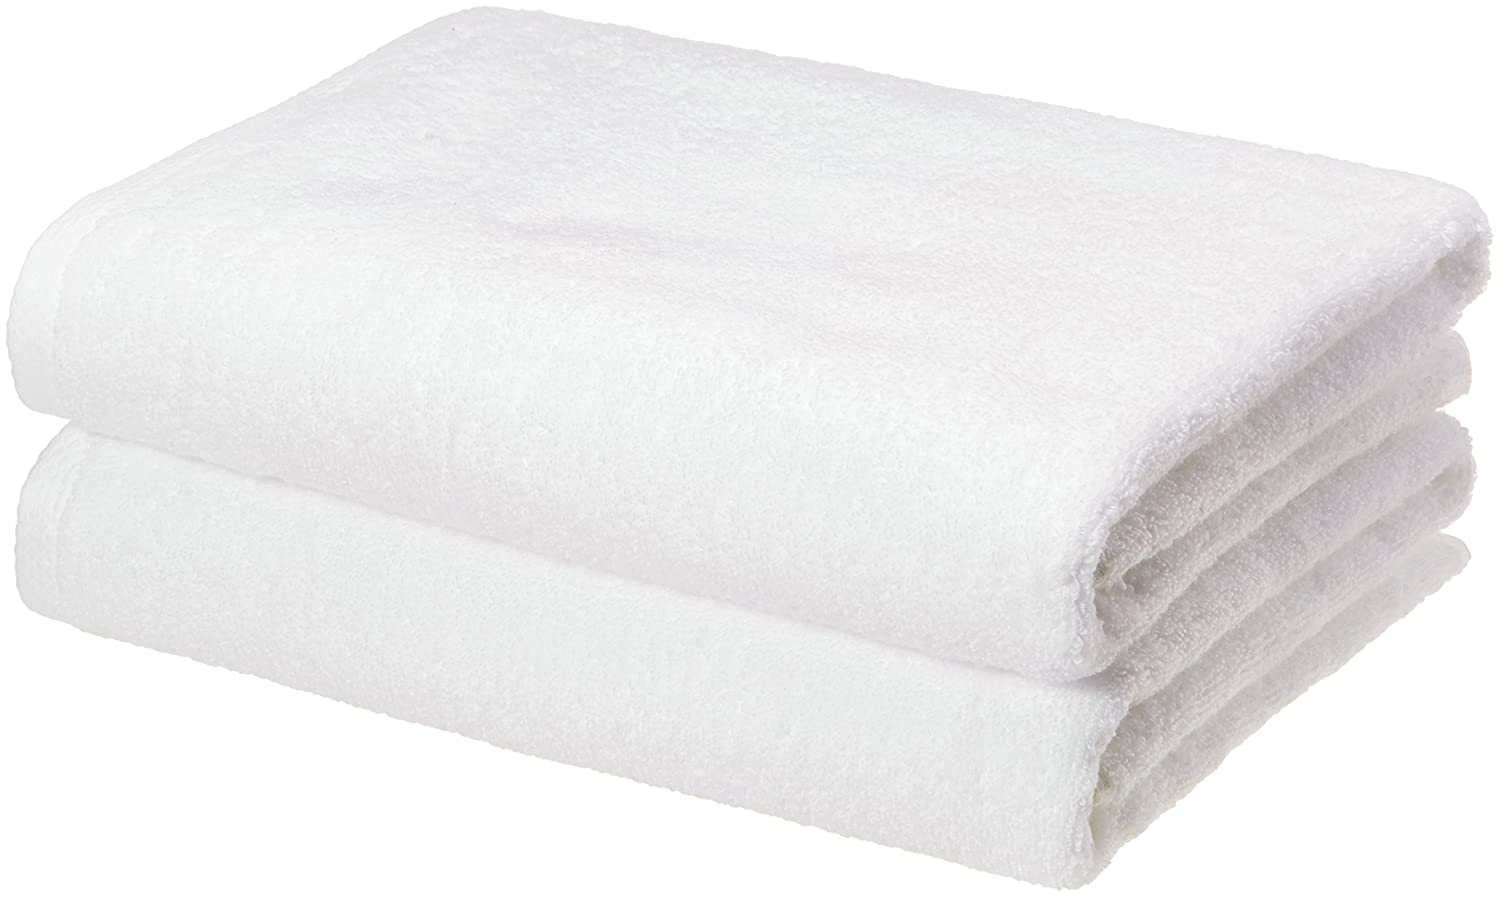 AmazonBasics Quick-Dry Bath Towels, 100% Cotton, Set of 2, White